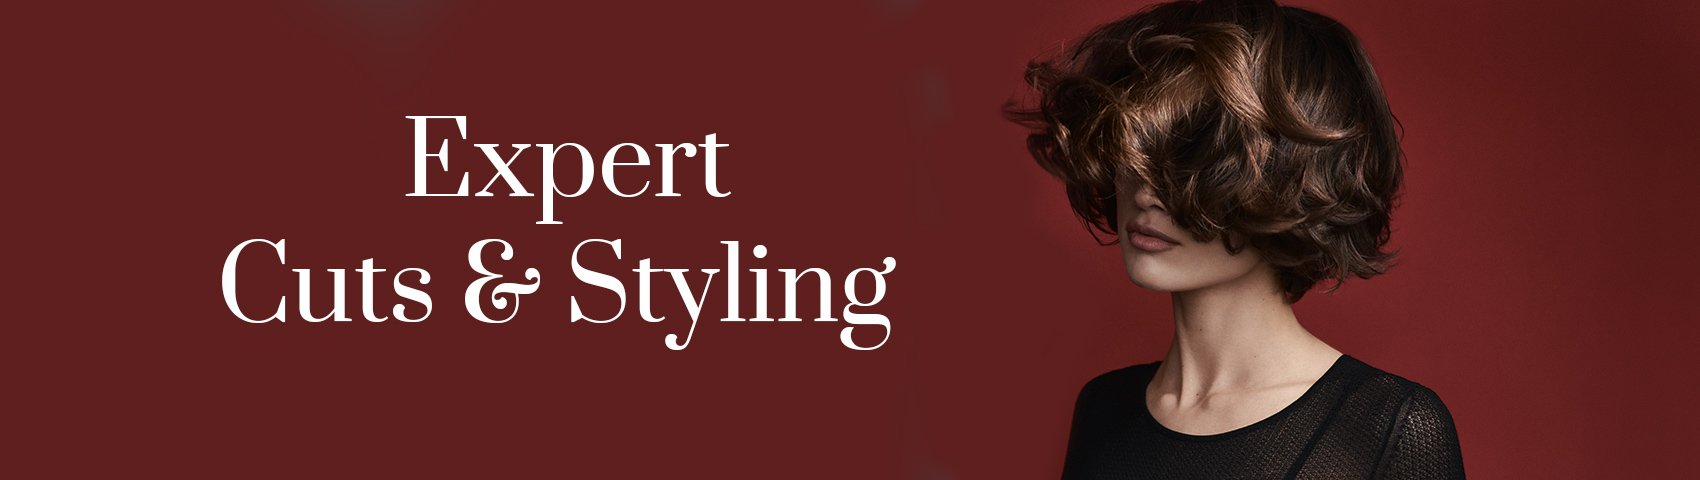 Expert Cuts Styling BANNER